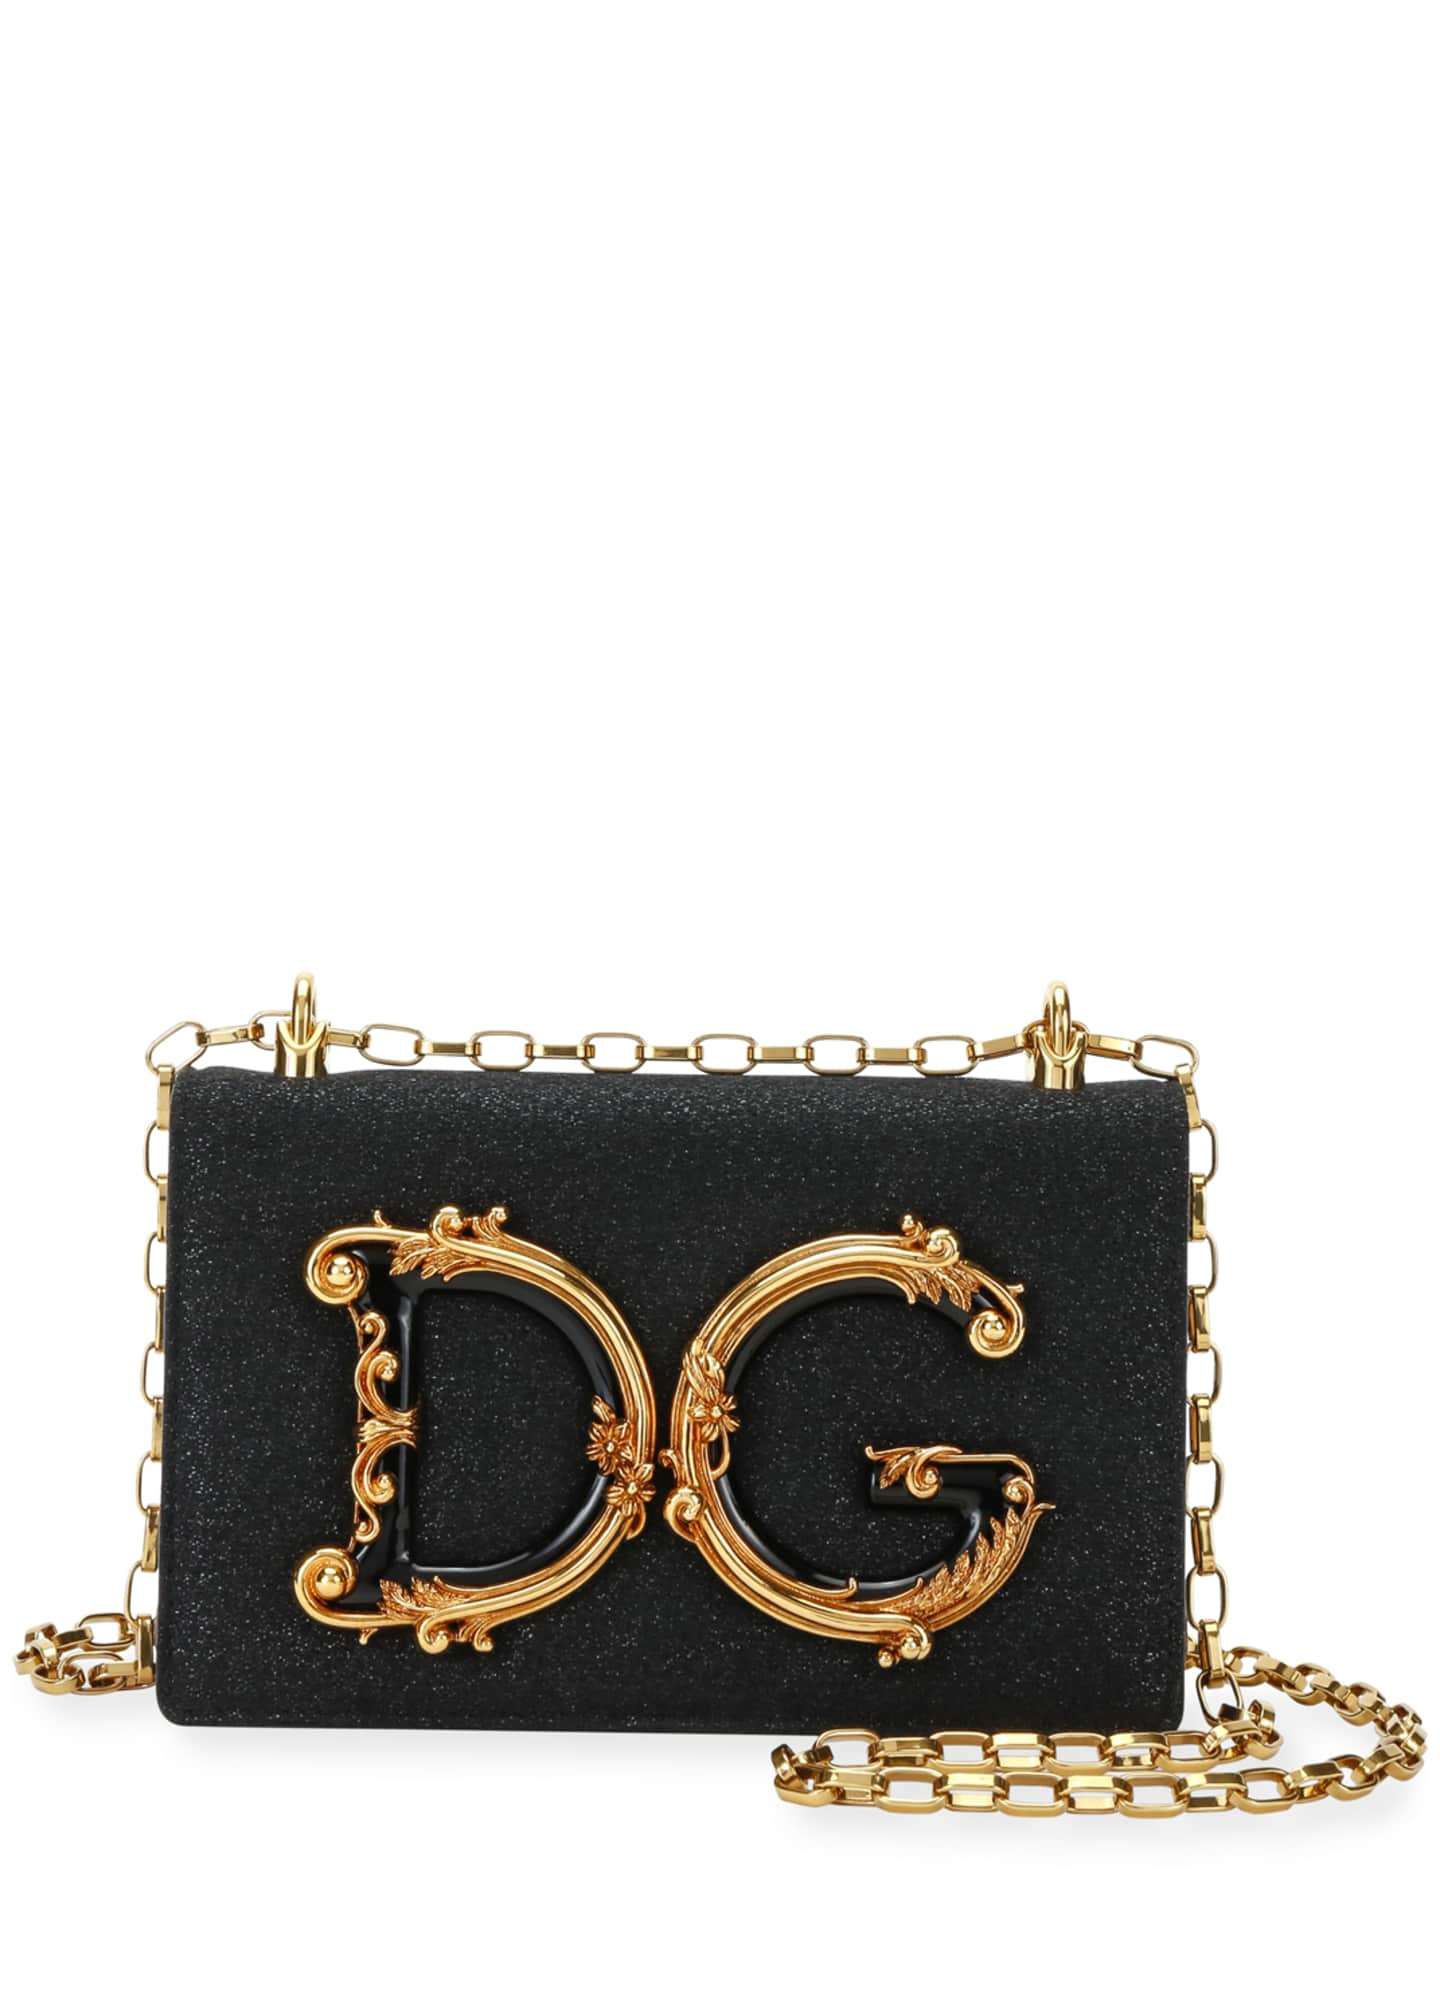 Dolce & Gabbana Baroque Small Shimmery Crossbody Bag